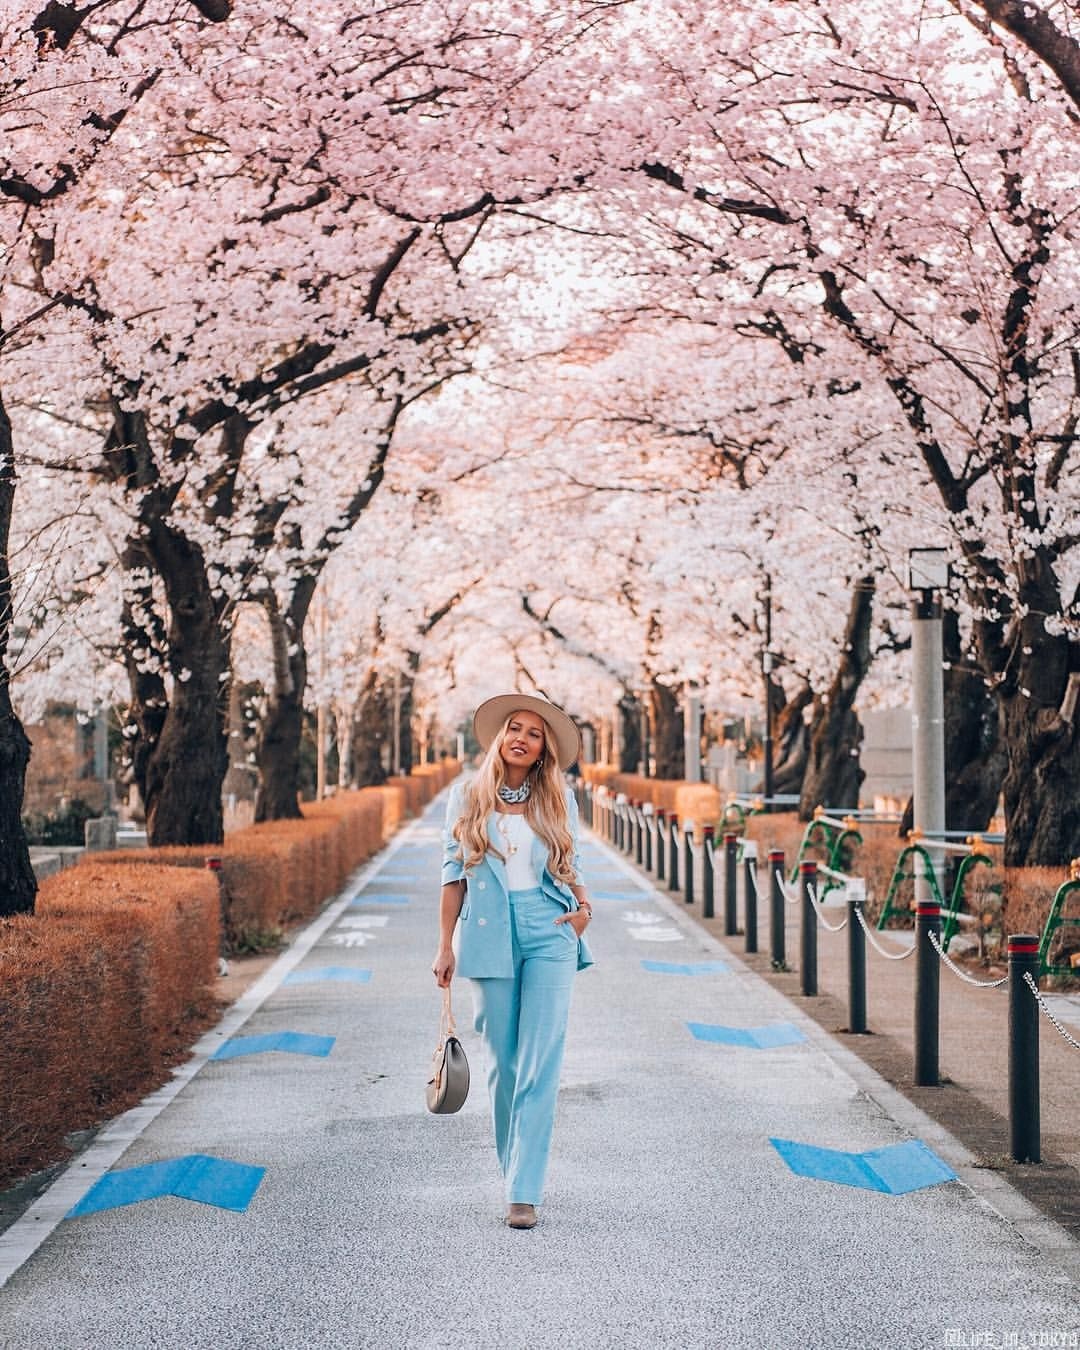 Kat Based In Japan Op Instagram When The Whole City Turns Pink This Year Japanese Gods Had Gone A Bit C Japan Photography Japan Travel Cherry Blossom Japan